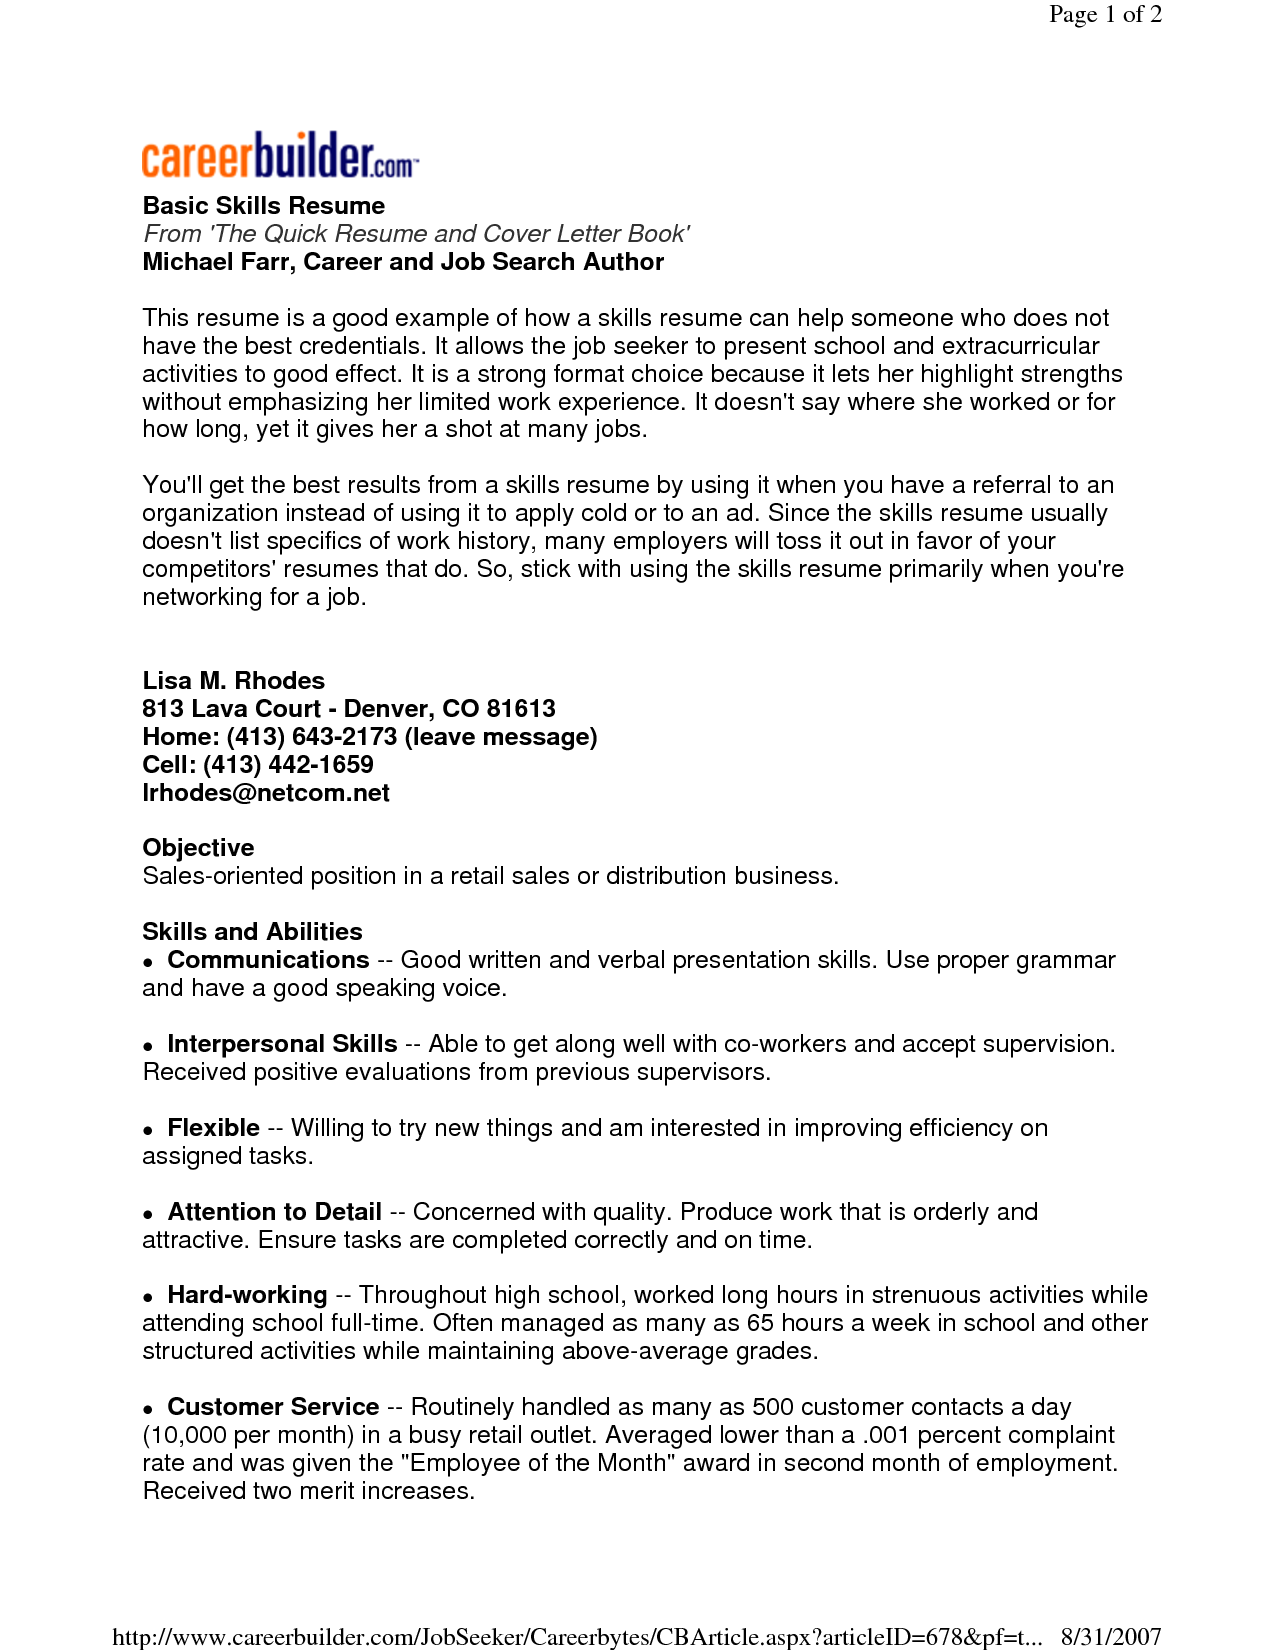 professional curriculum vitae resume template sample template of find here the sample resume that best fits your profile in order to get ahead the